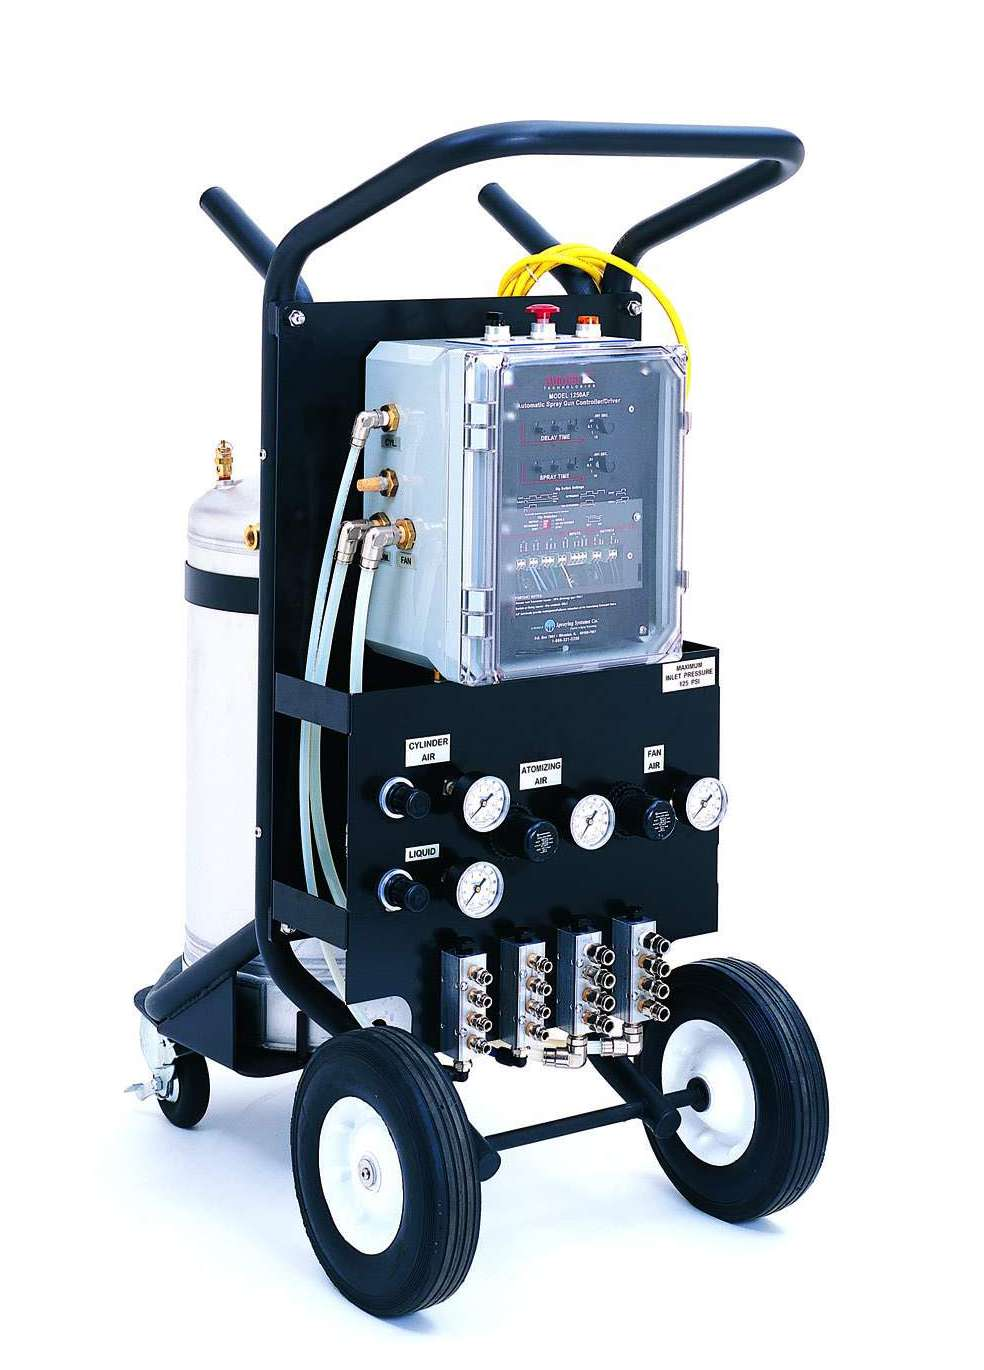 Autojet Technologies Introduces An Affordable Automated